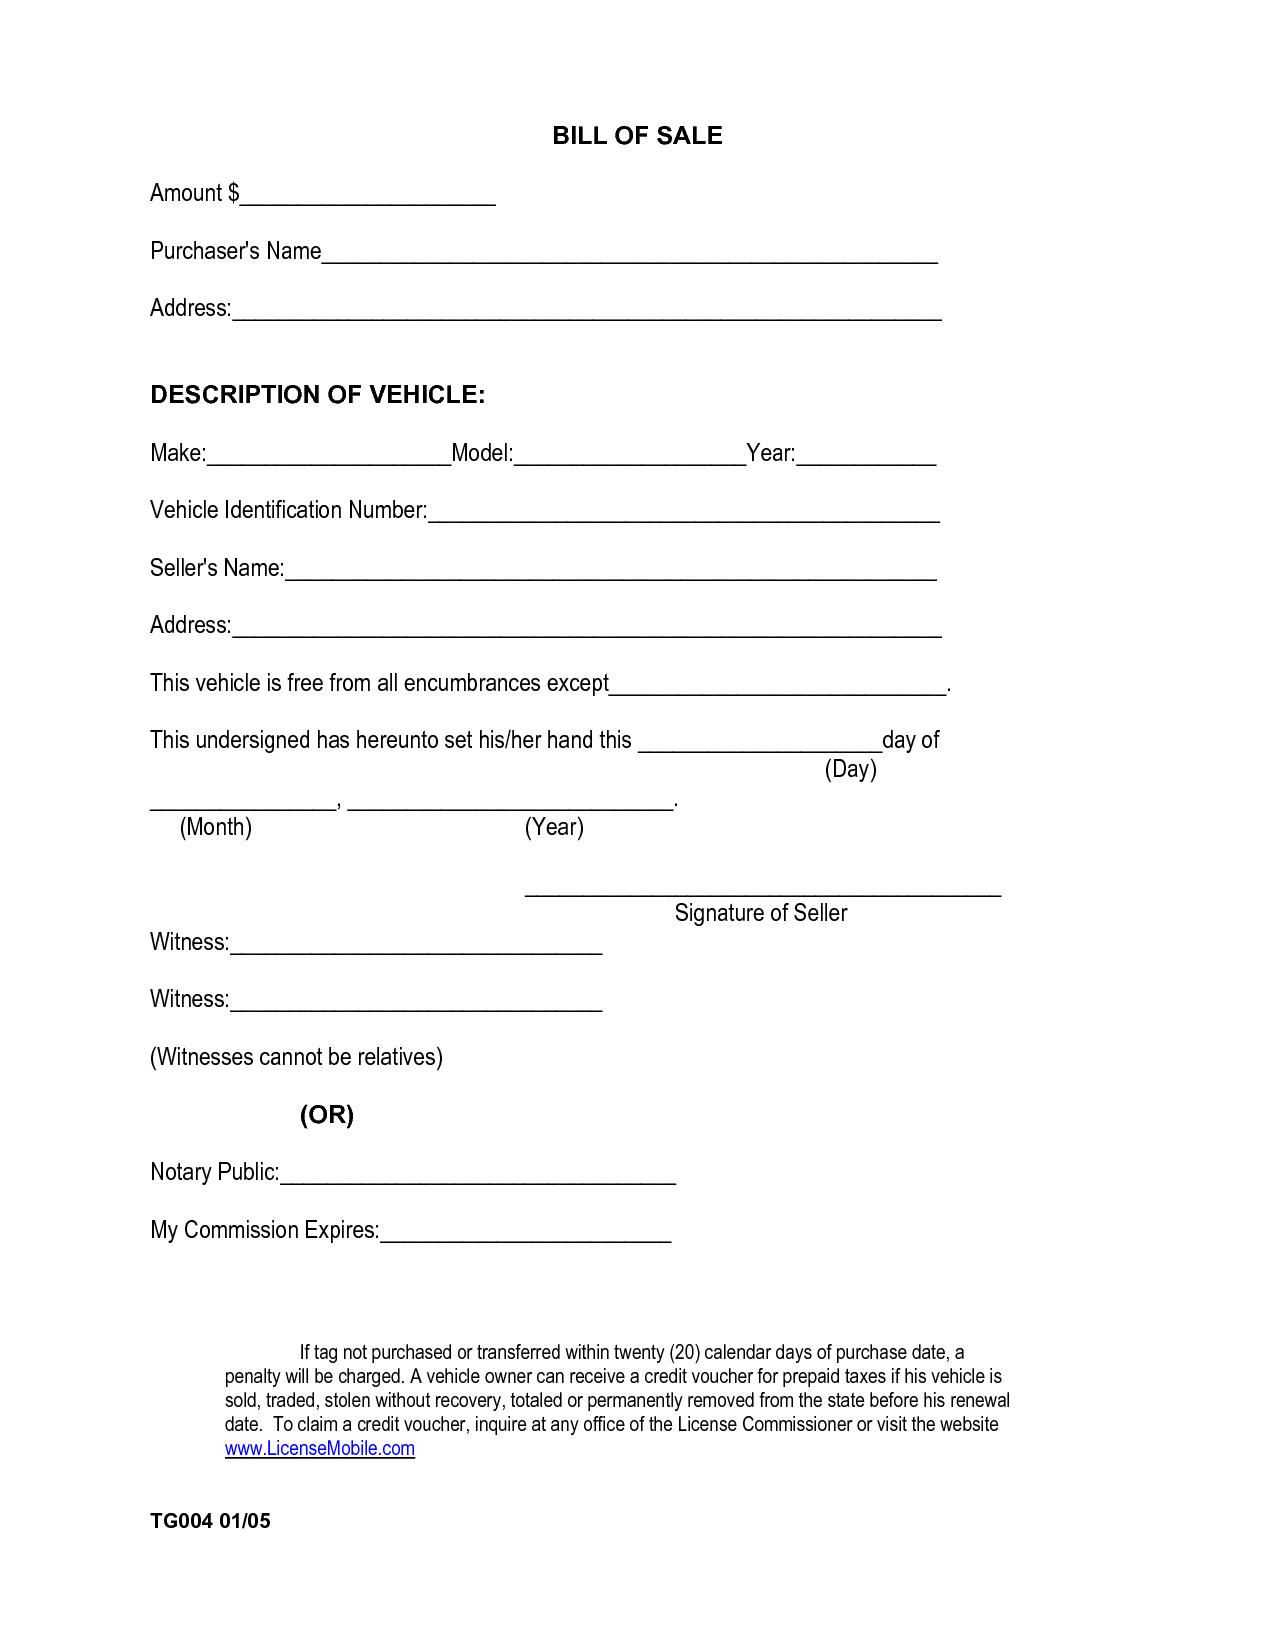 Bill Of Sale Template Alabama and Best Photos Of Bill Of Sale form Alabama Alabama Vehicle Bill